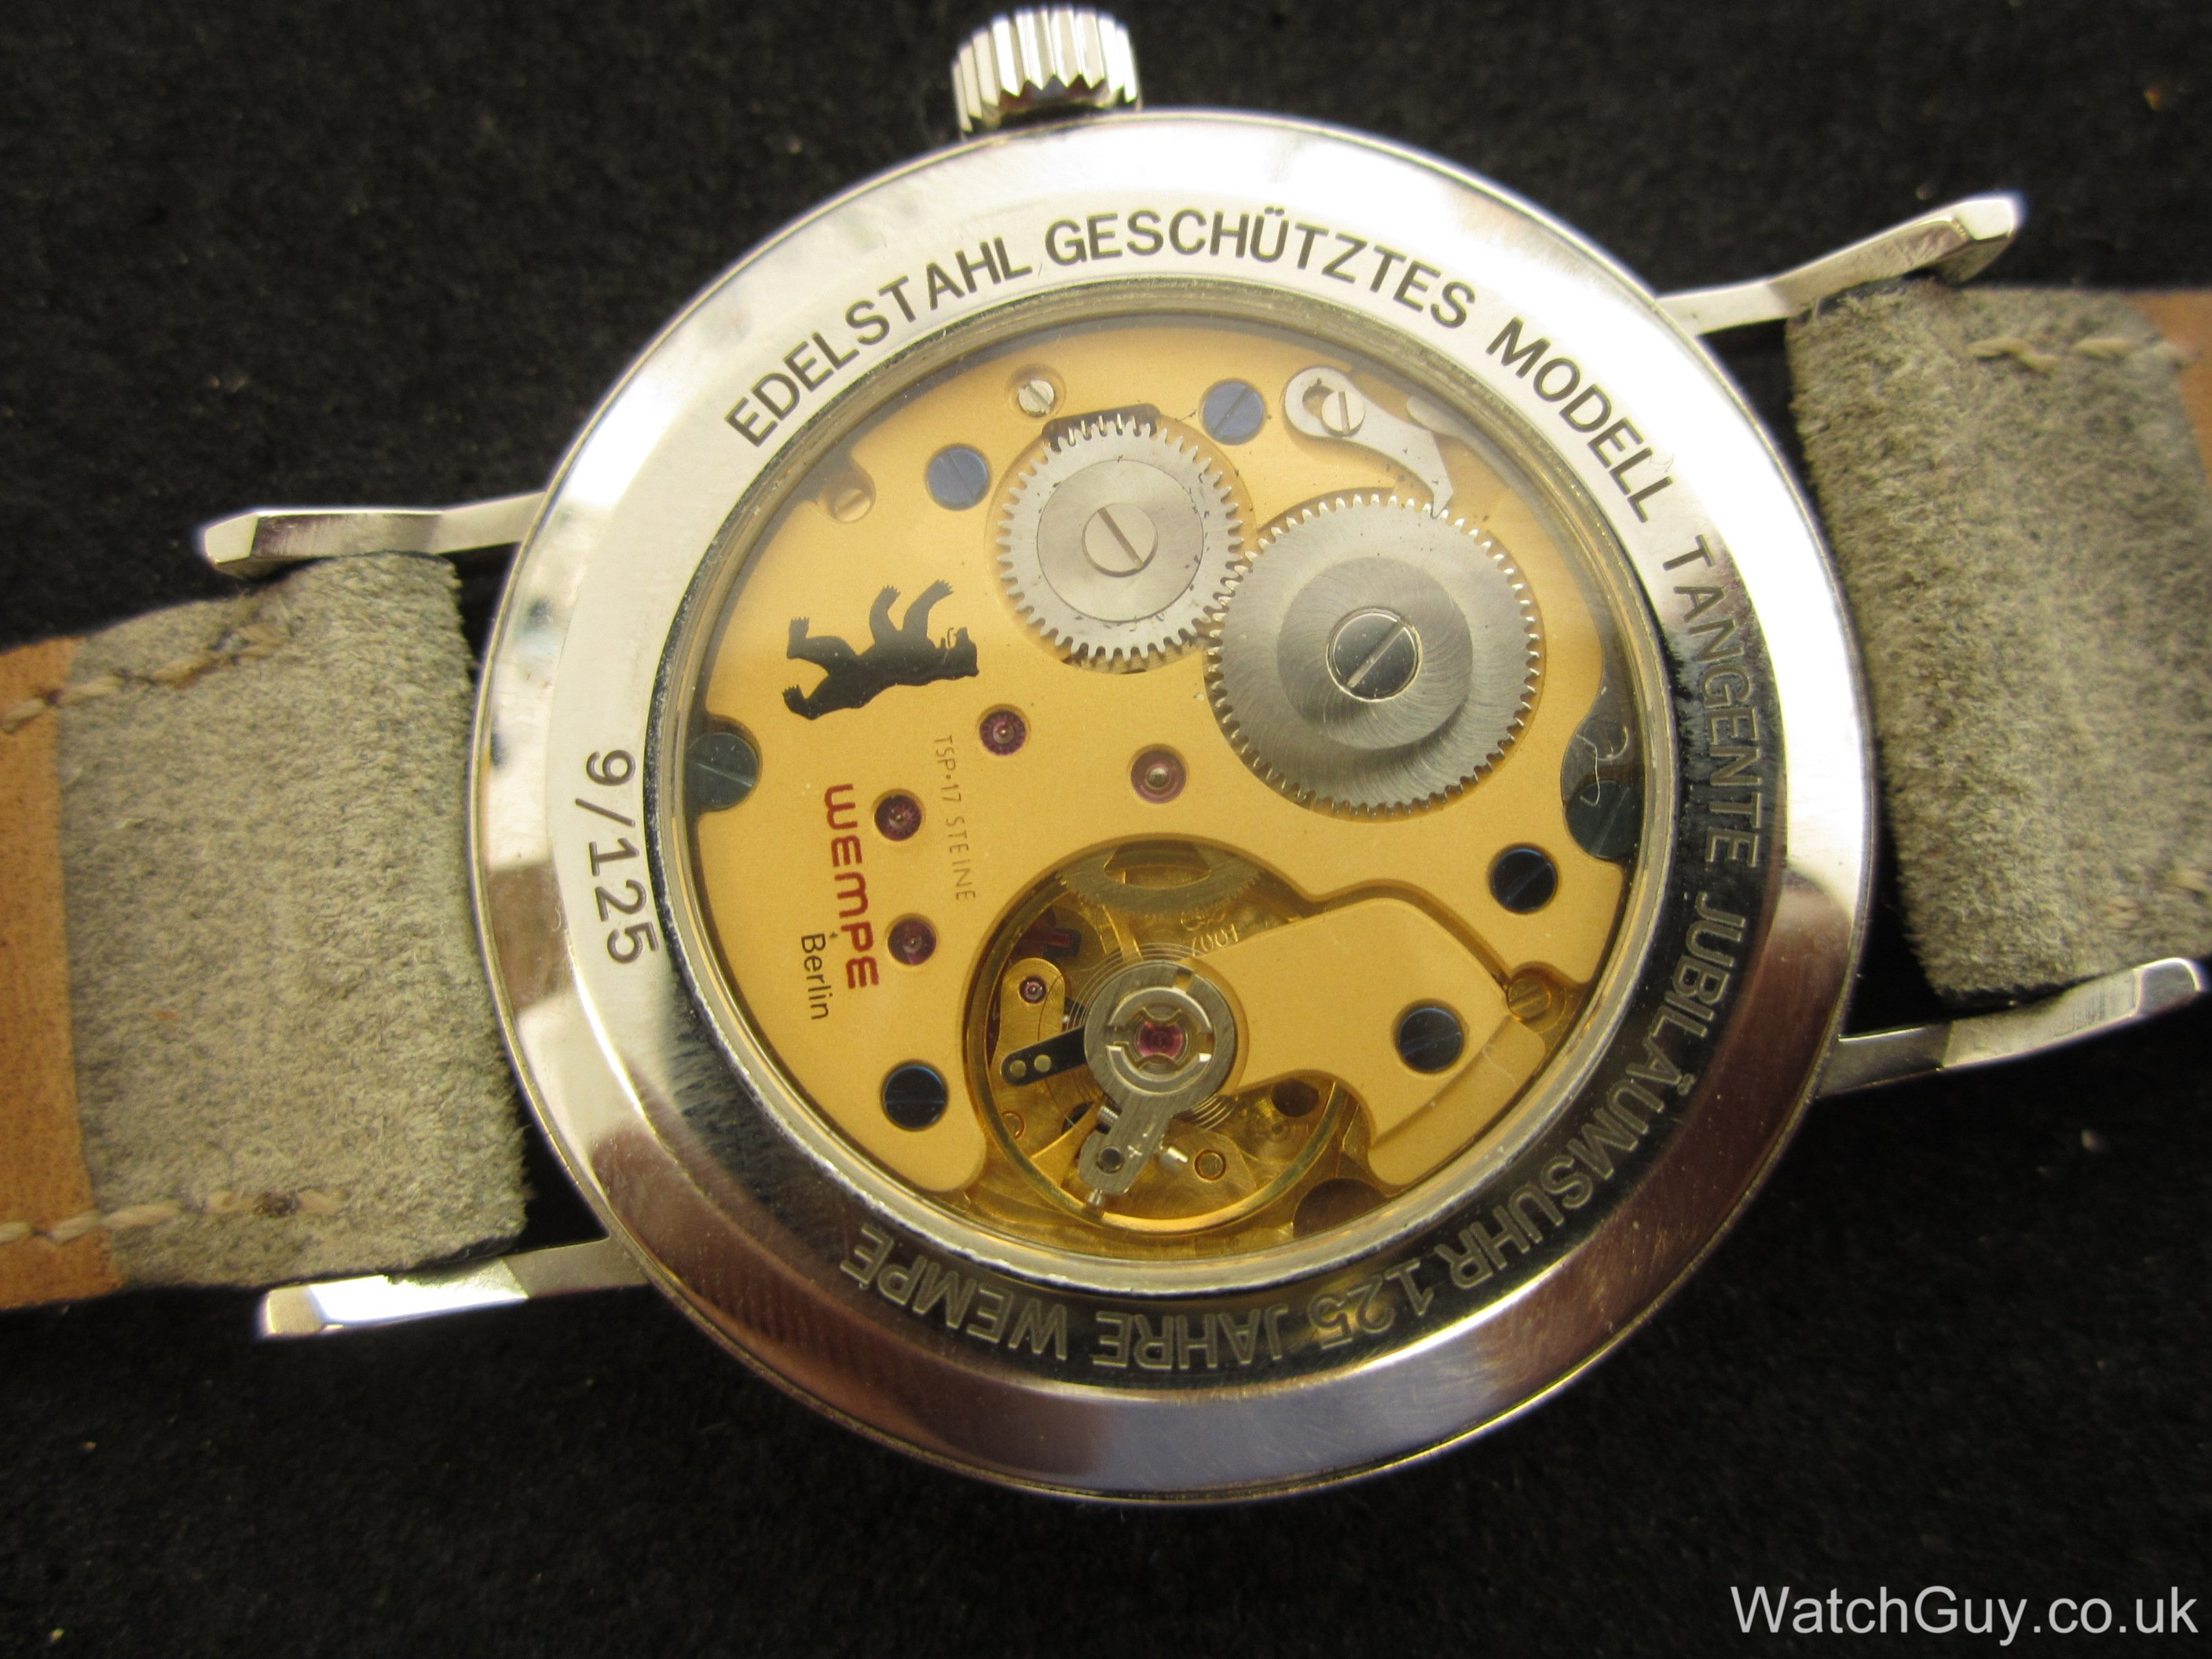 patrimony gazette the gentleman constantin bauhaus watches dress watch s vacheron guide